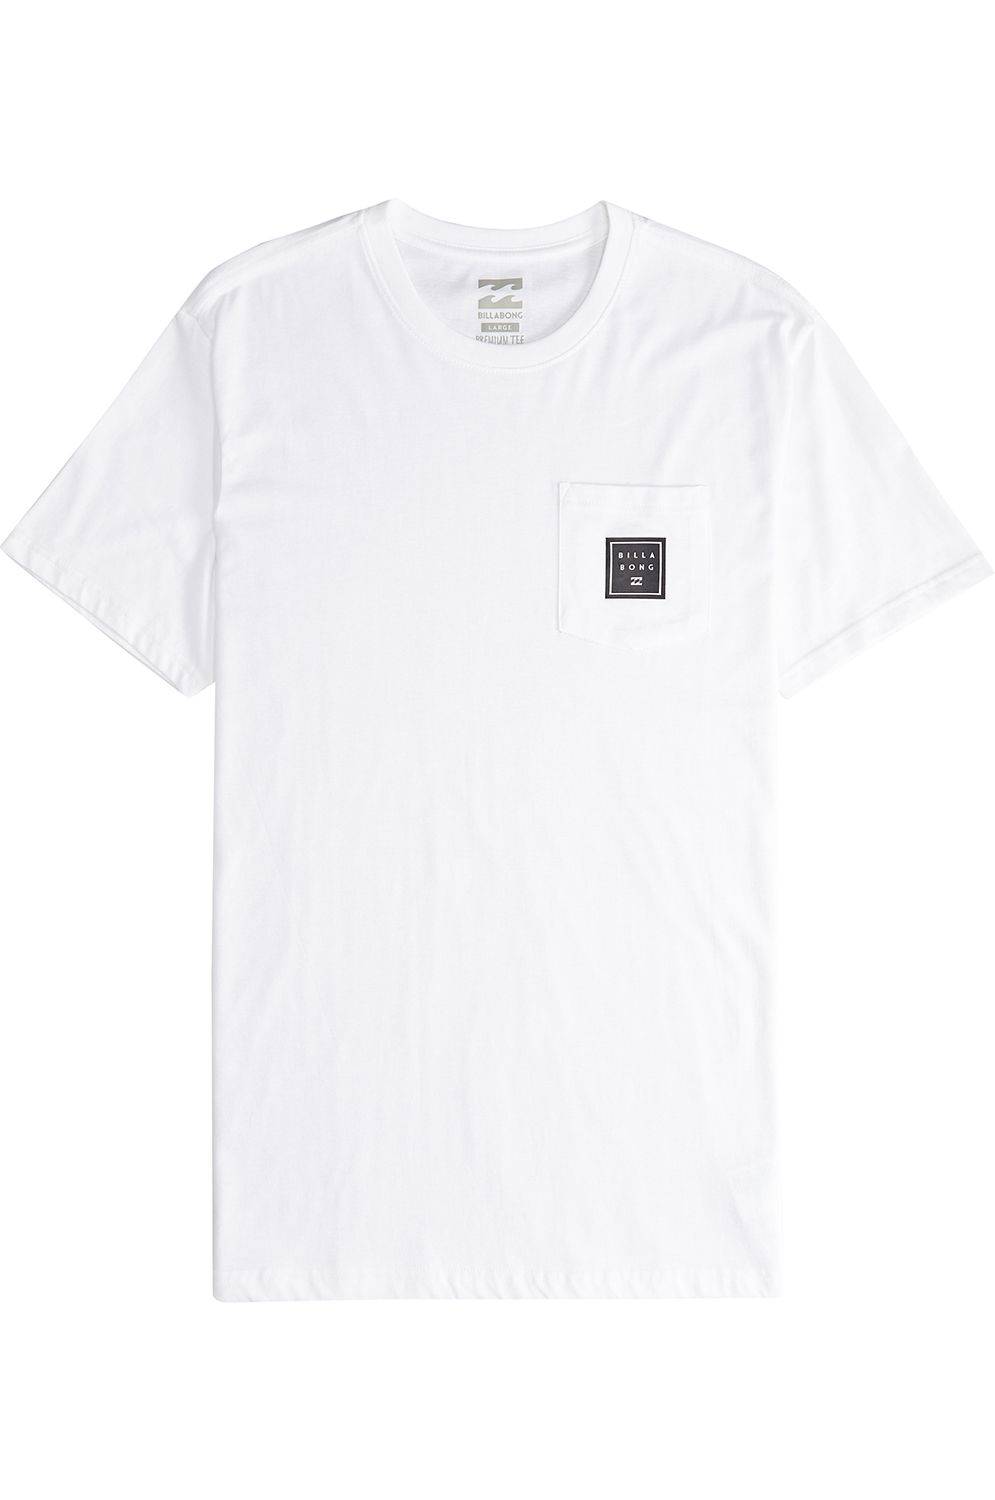 T-Shirt Billabong STACKED White